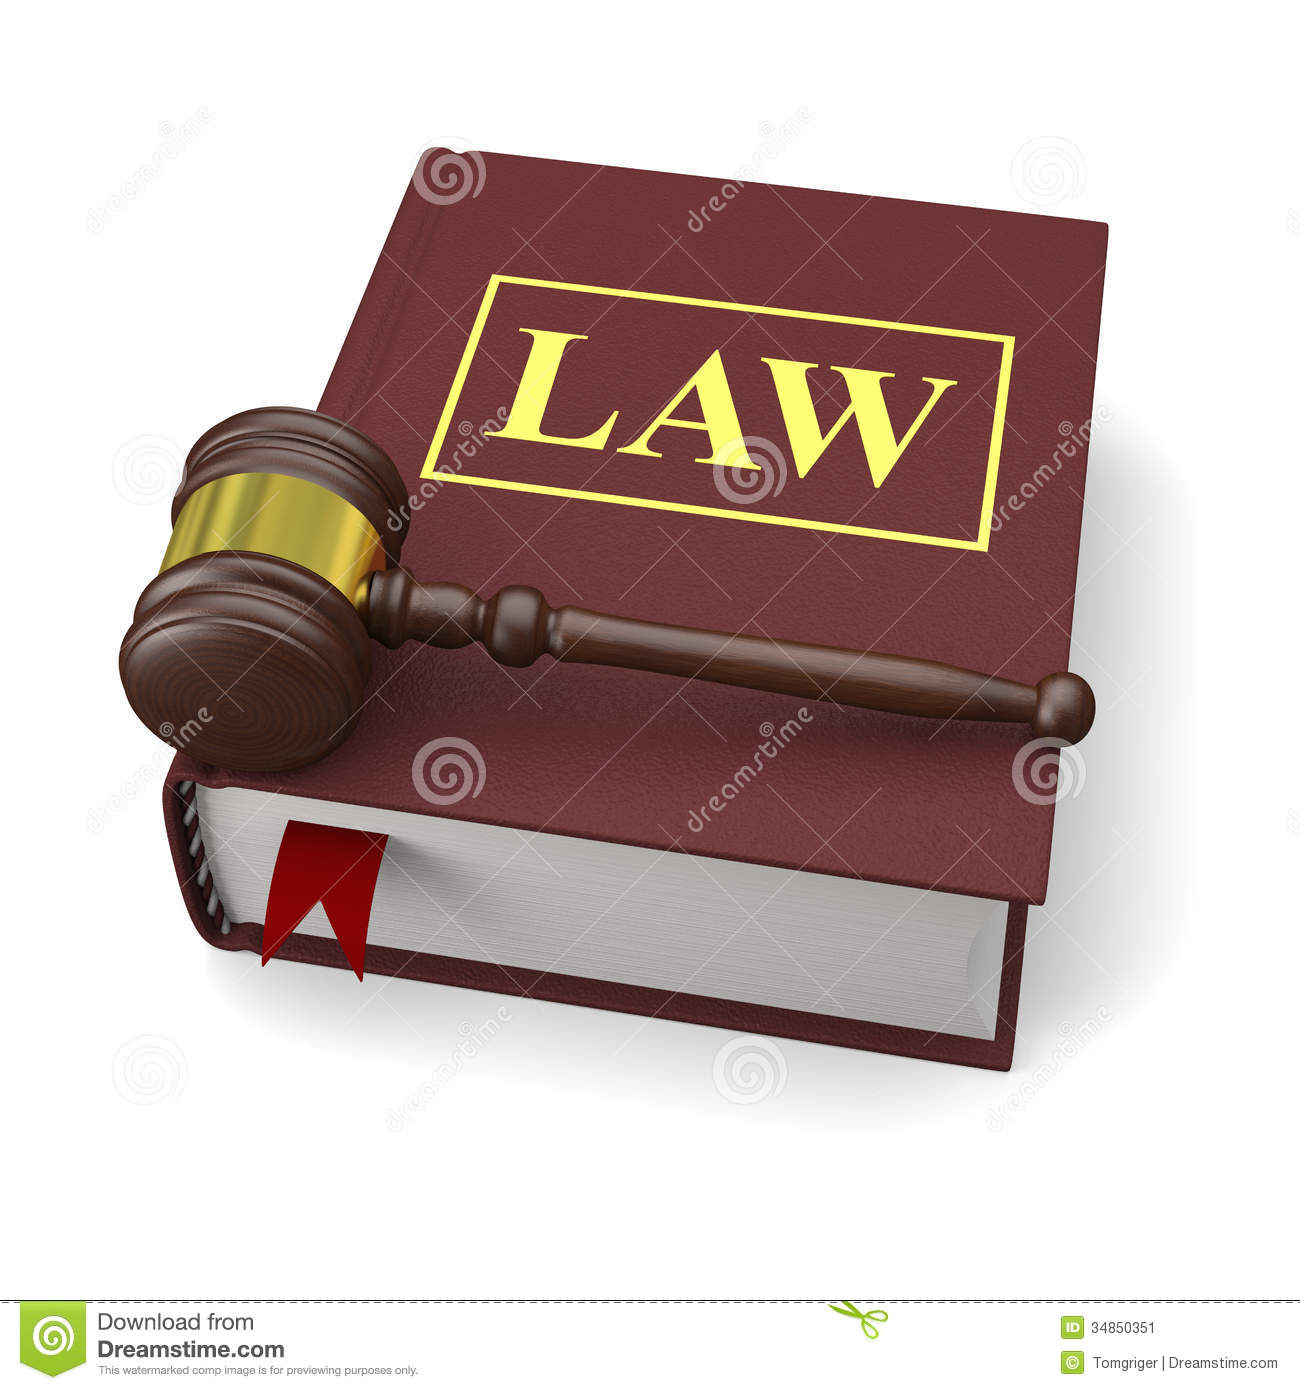 Gavel and law book on white background, symbols of law and justice.